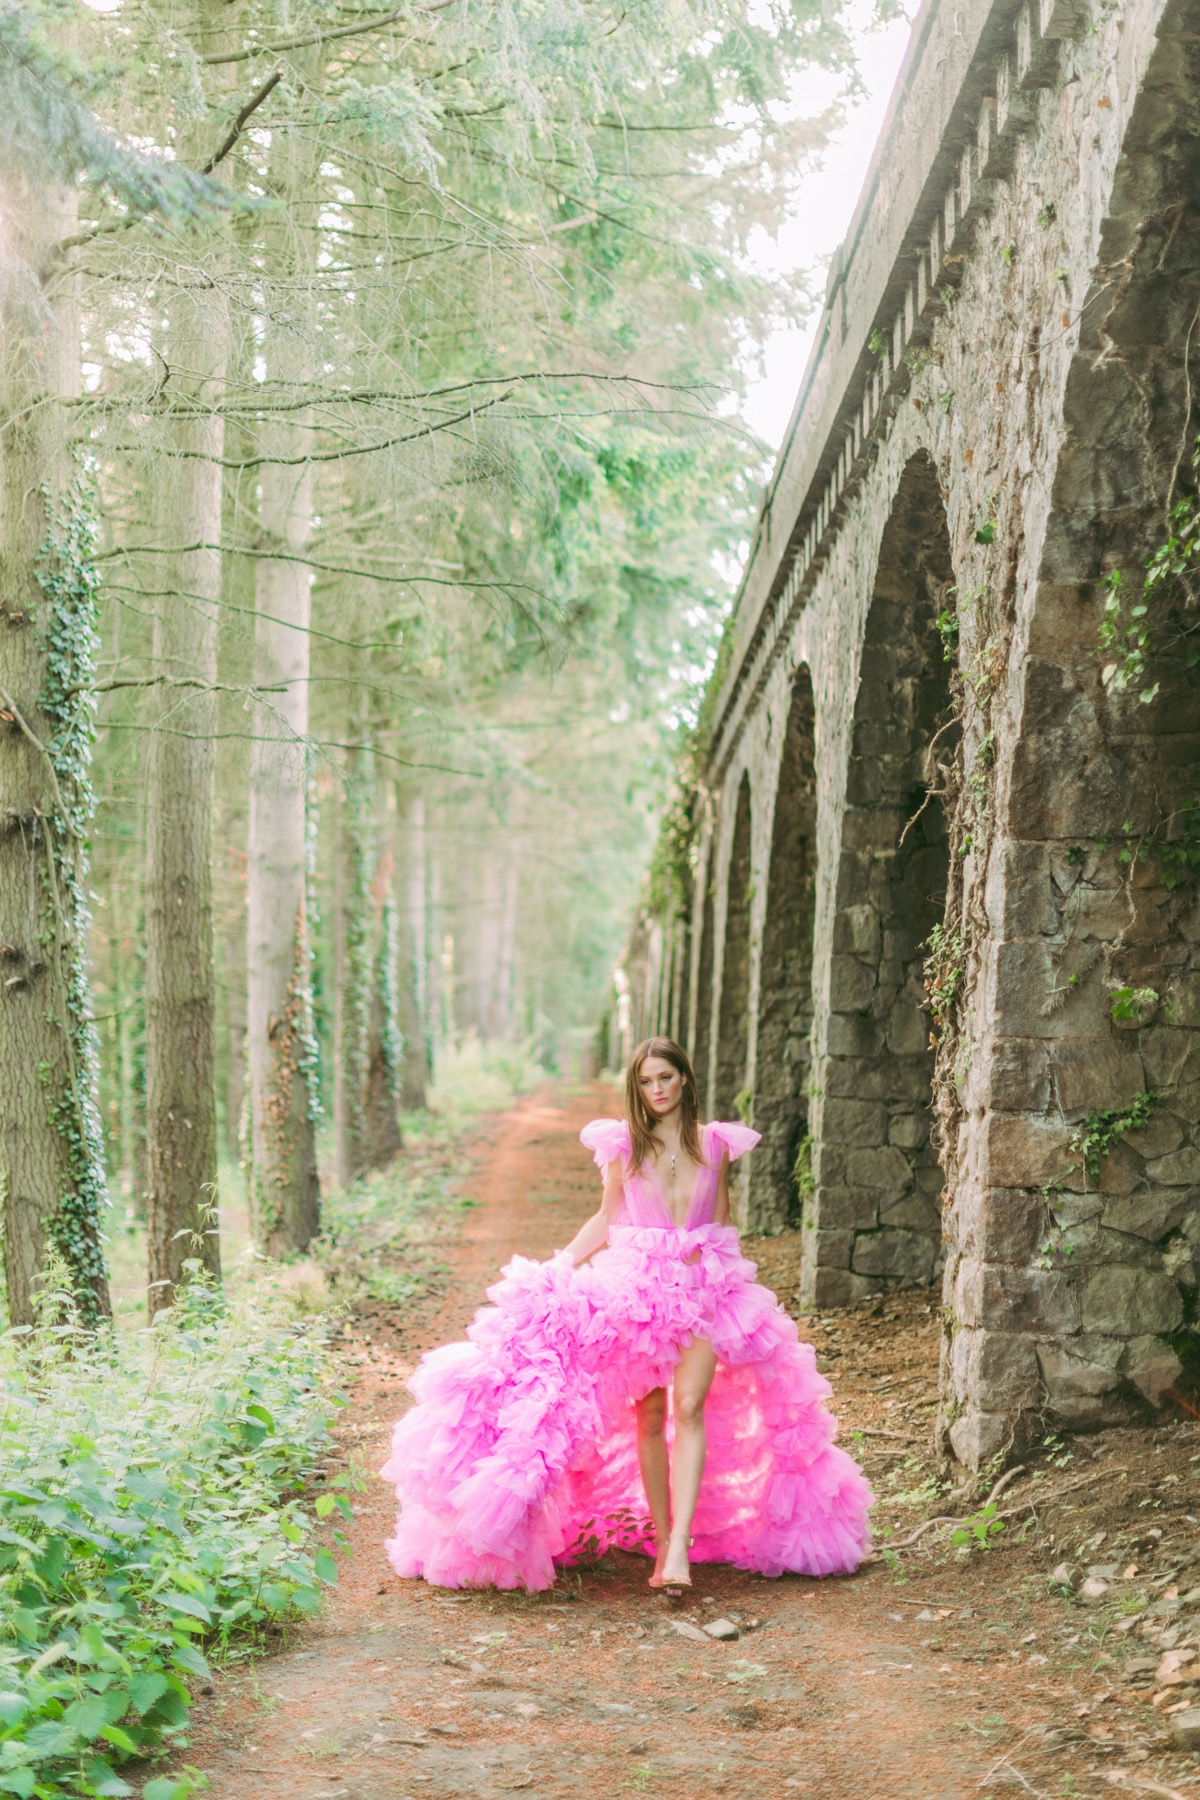 A French Castle Garden Party in Millenial Pink